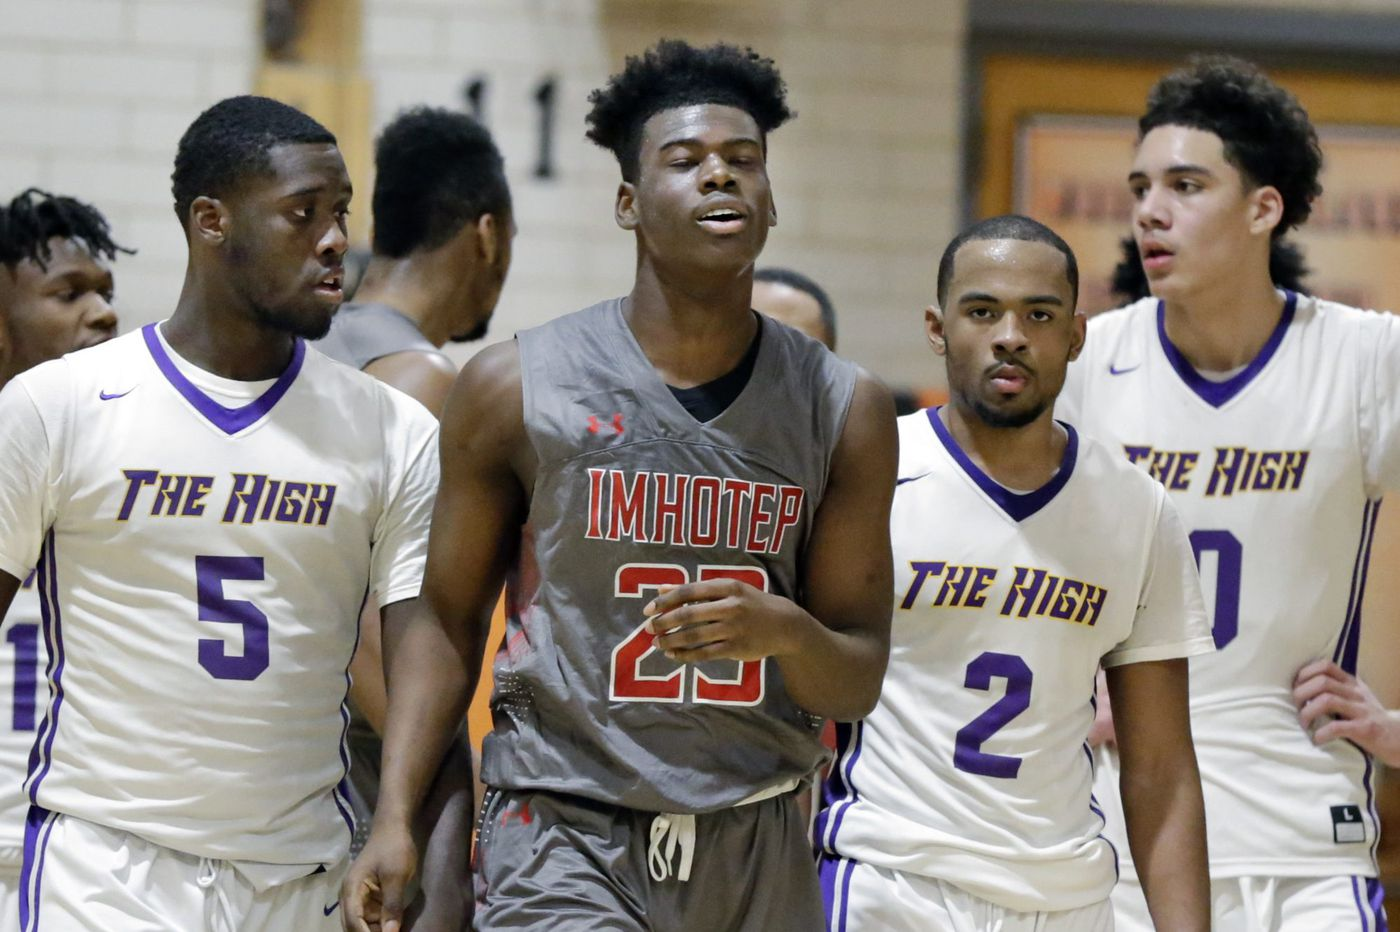 Imhotep Charter forward Jamil Riggins commits to Binghamton